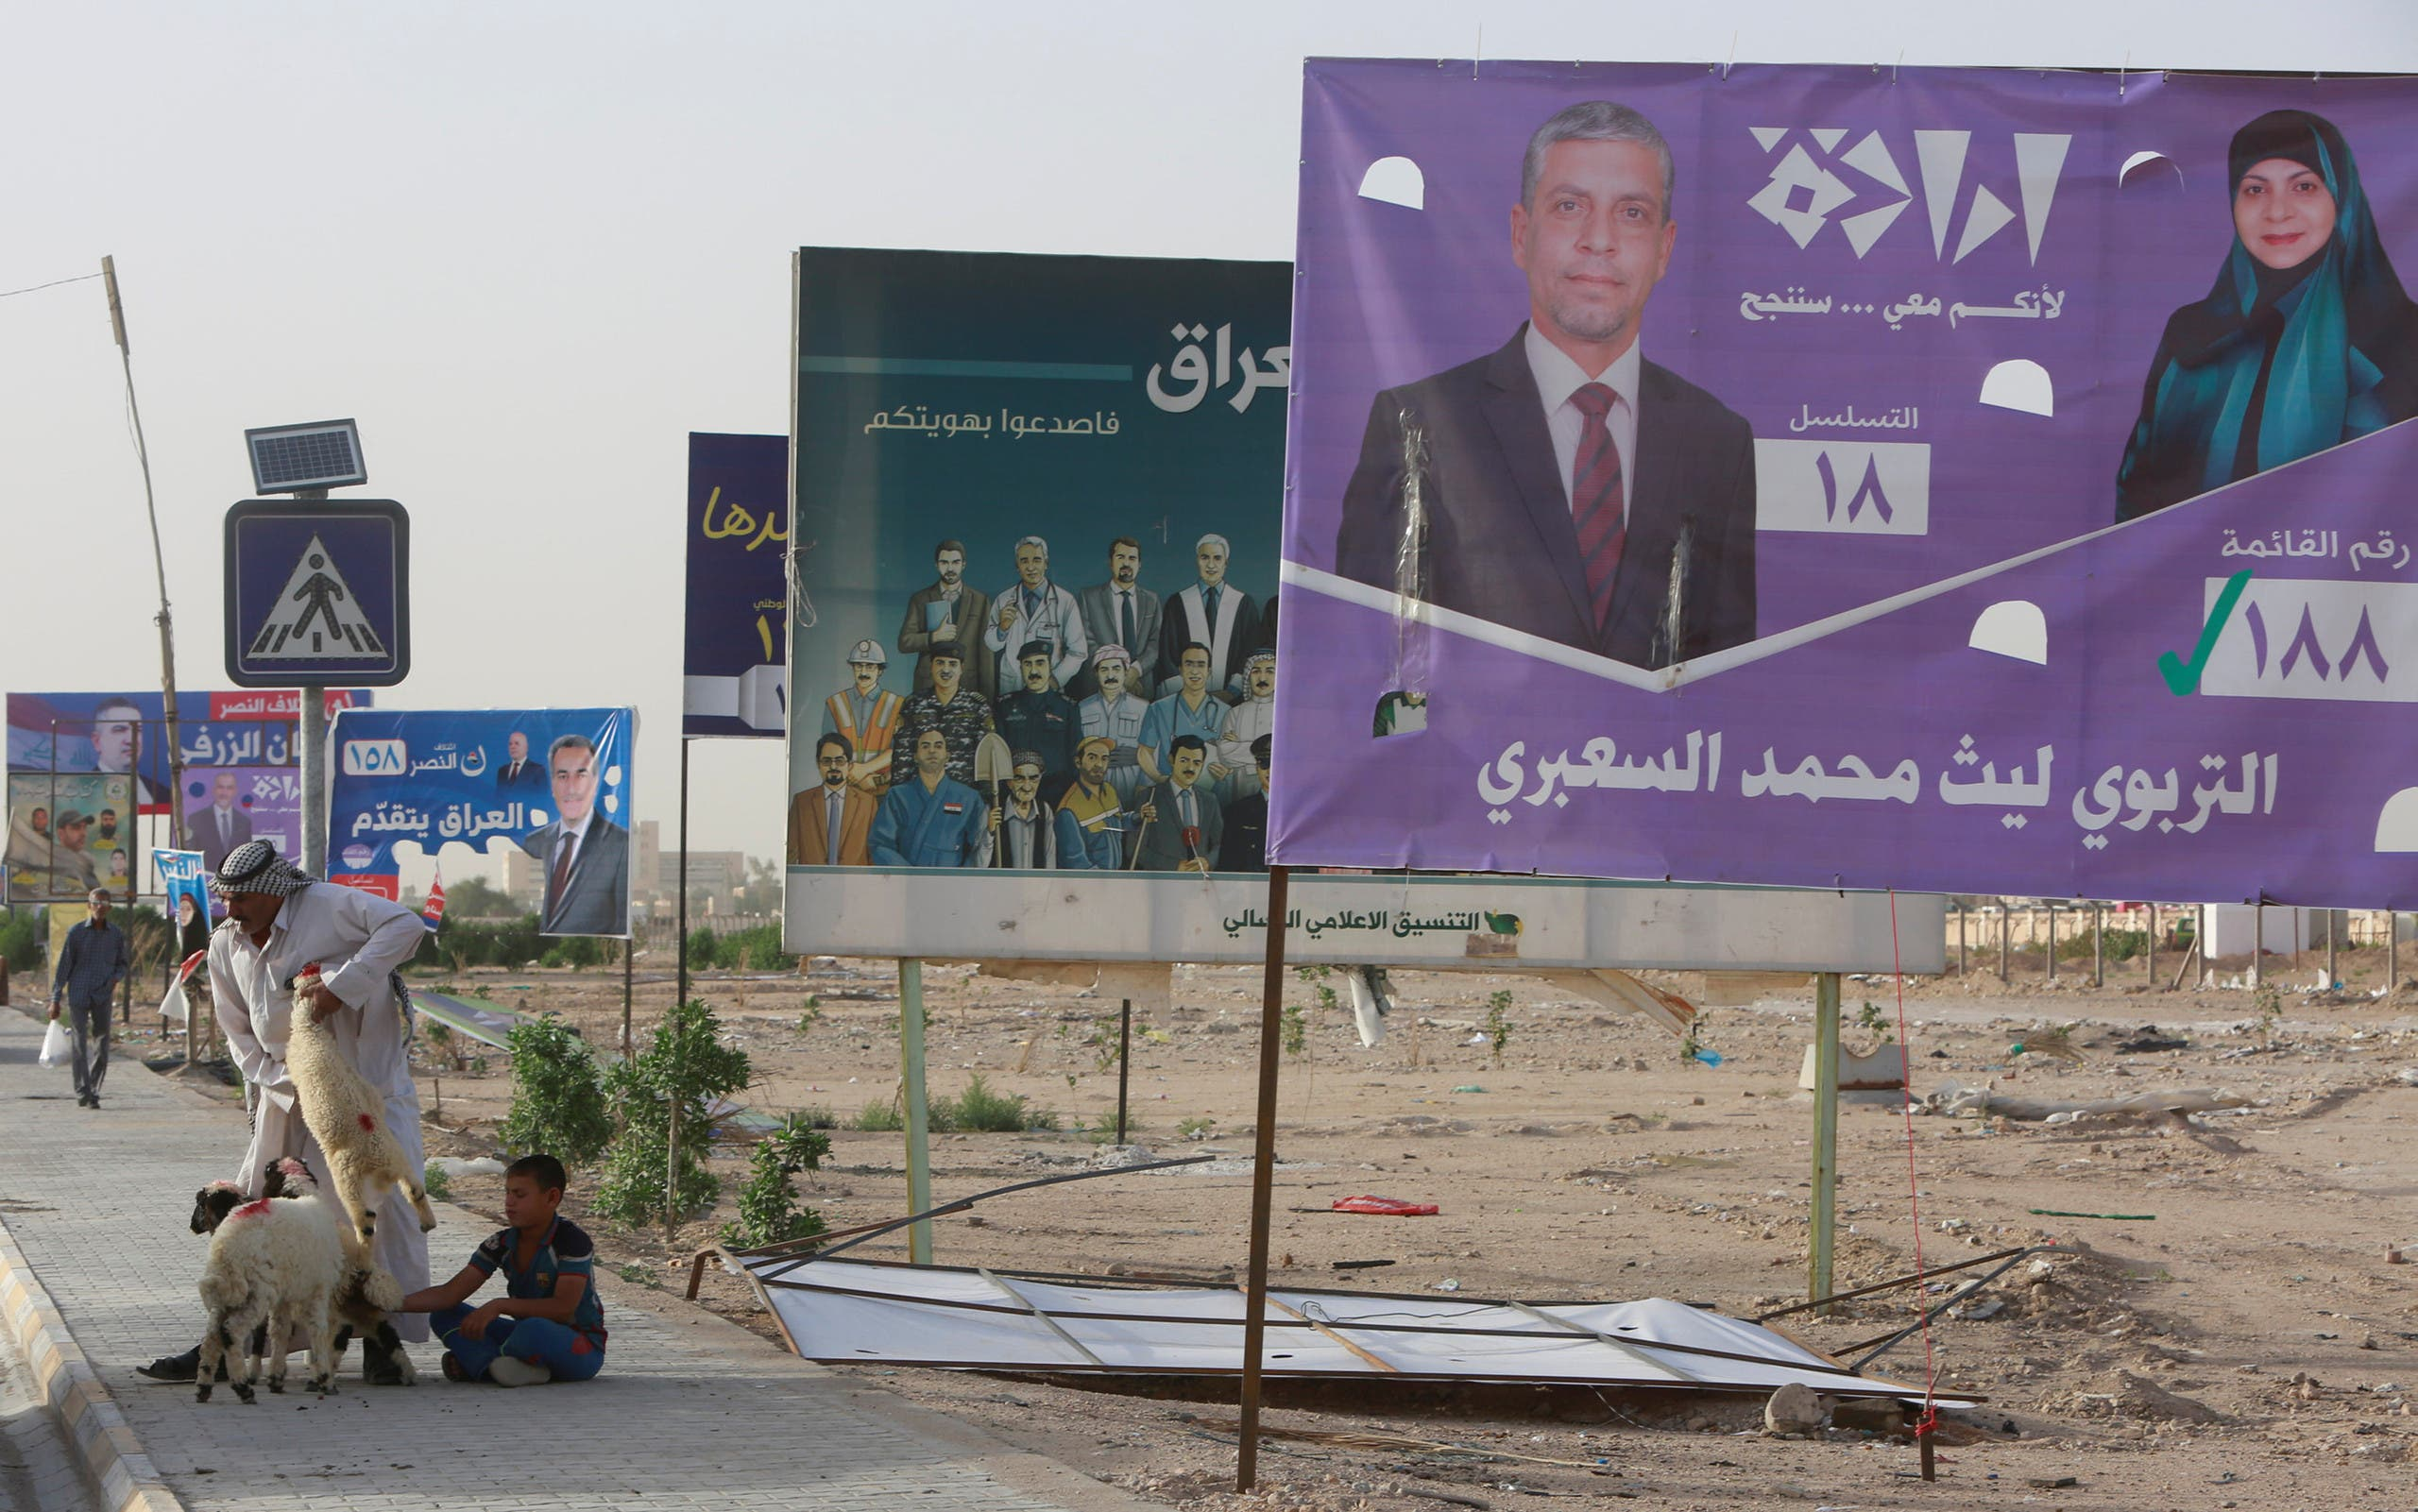 A man holds a sheep for sale next to campaign posters of candidates ahead of parliamentary election, in Iraq, April 20, 2018. (Reuters)